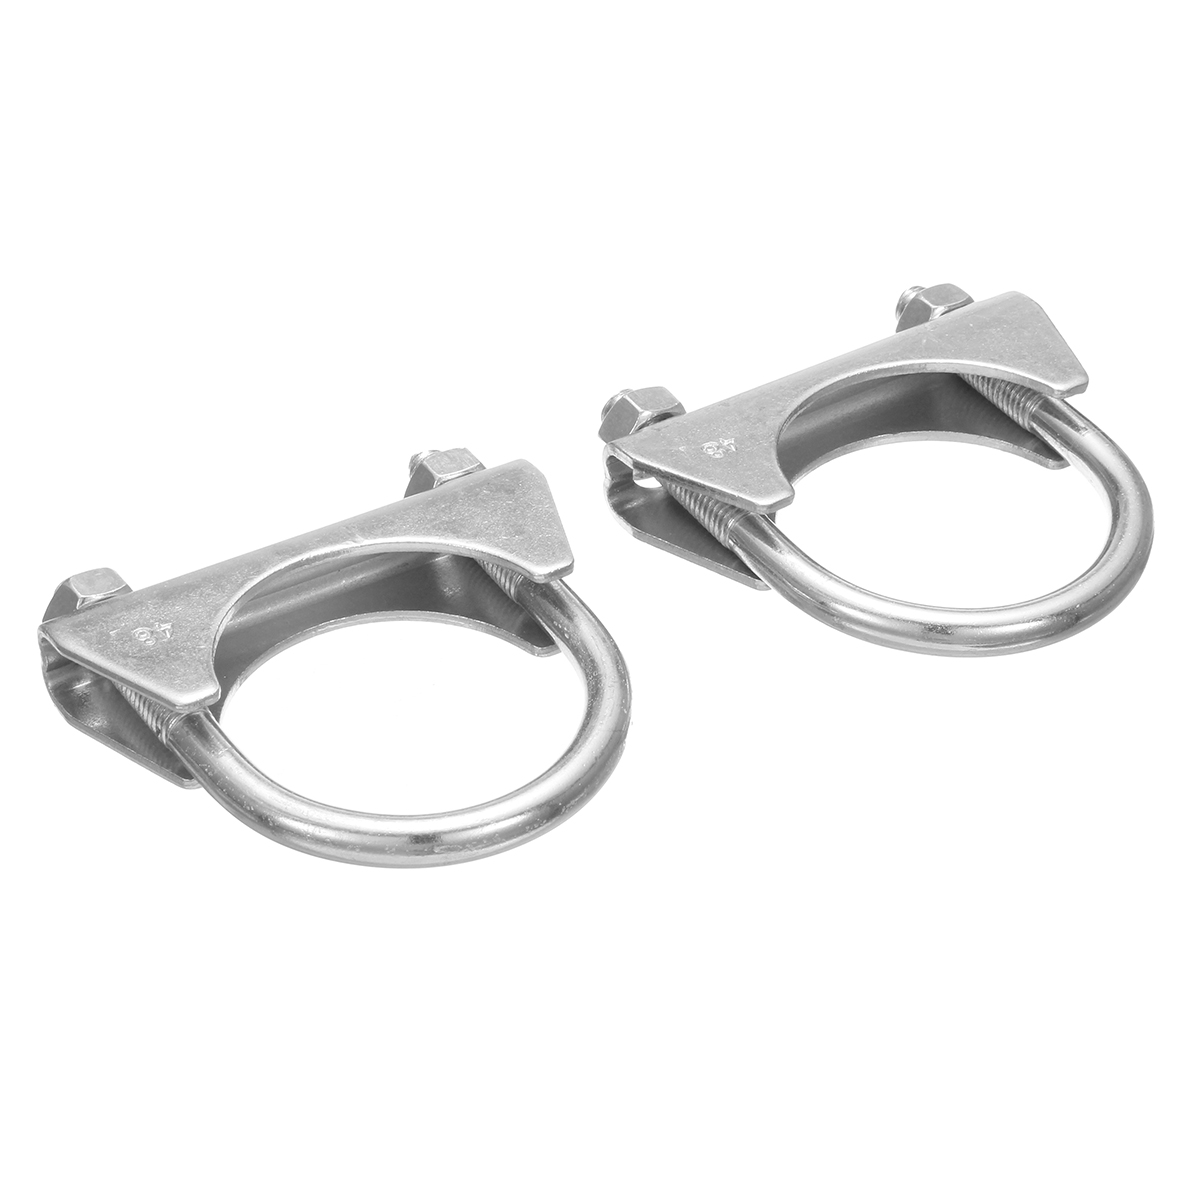 Exhaust Clamp On Flexi Tube Joint Flexible Pipe Repair 45x200mm Flex